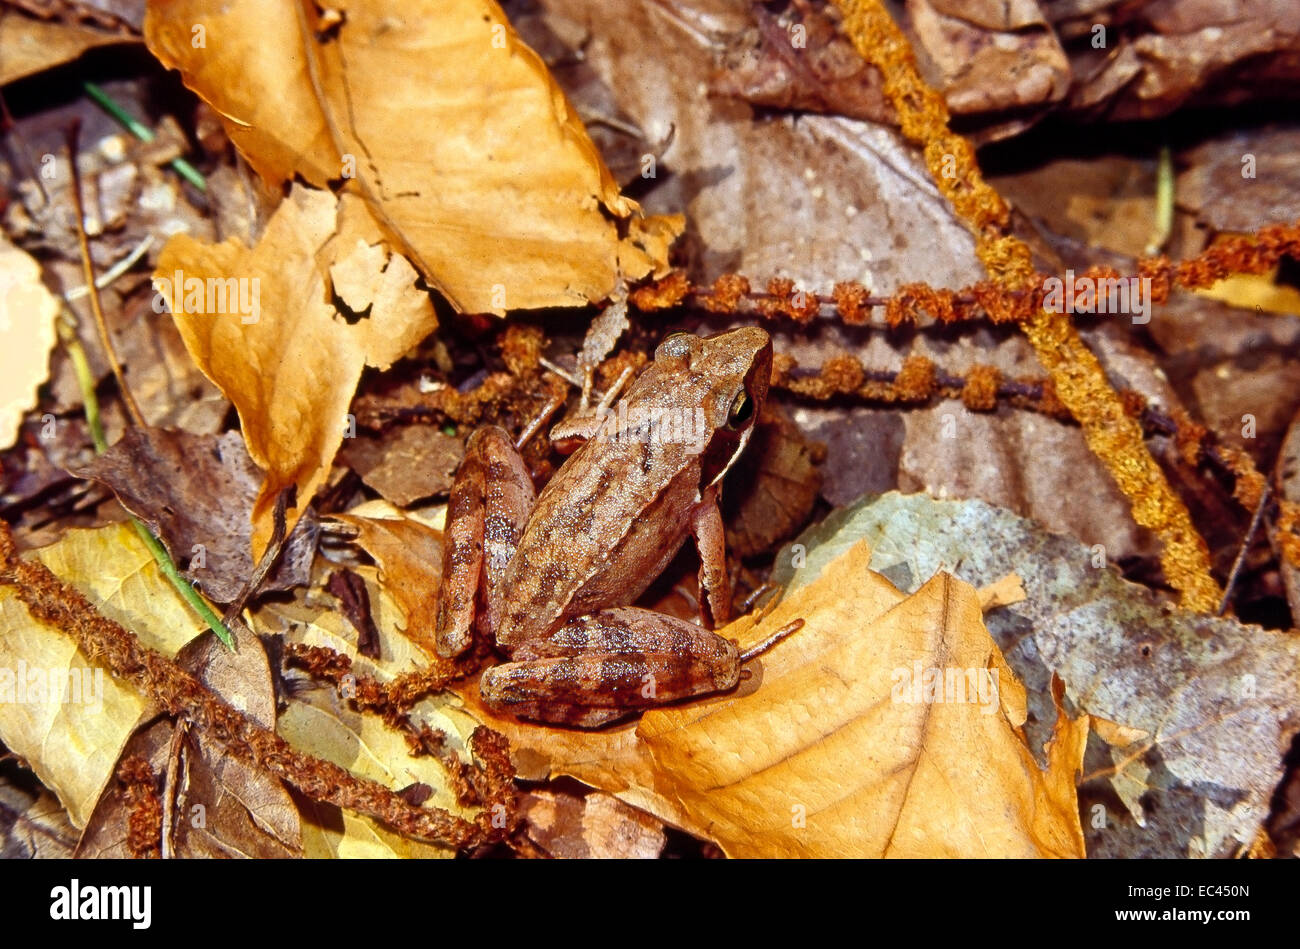 Mimicry - Italian Agile Frog (Rana latastei) camouflaged among the litter of fallen leaves in the undergrowth - Stock Image